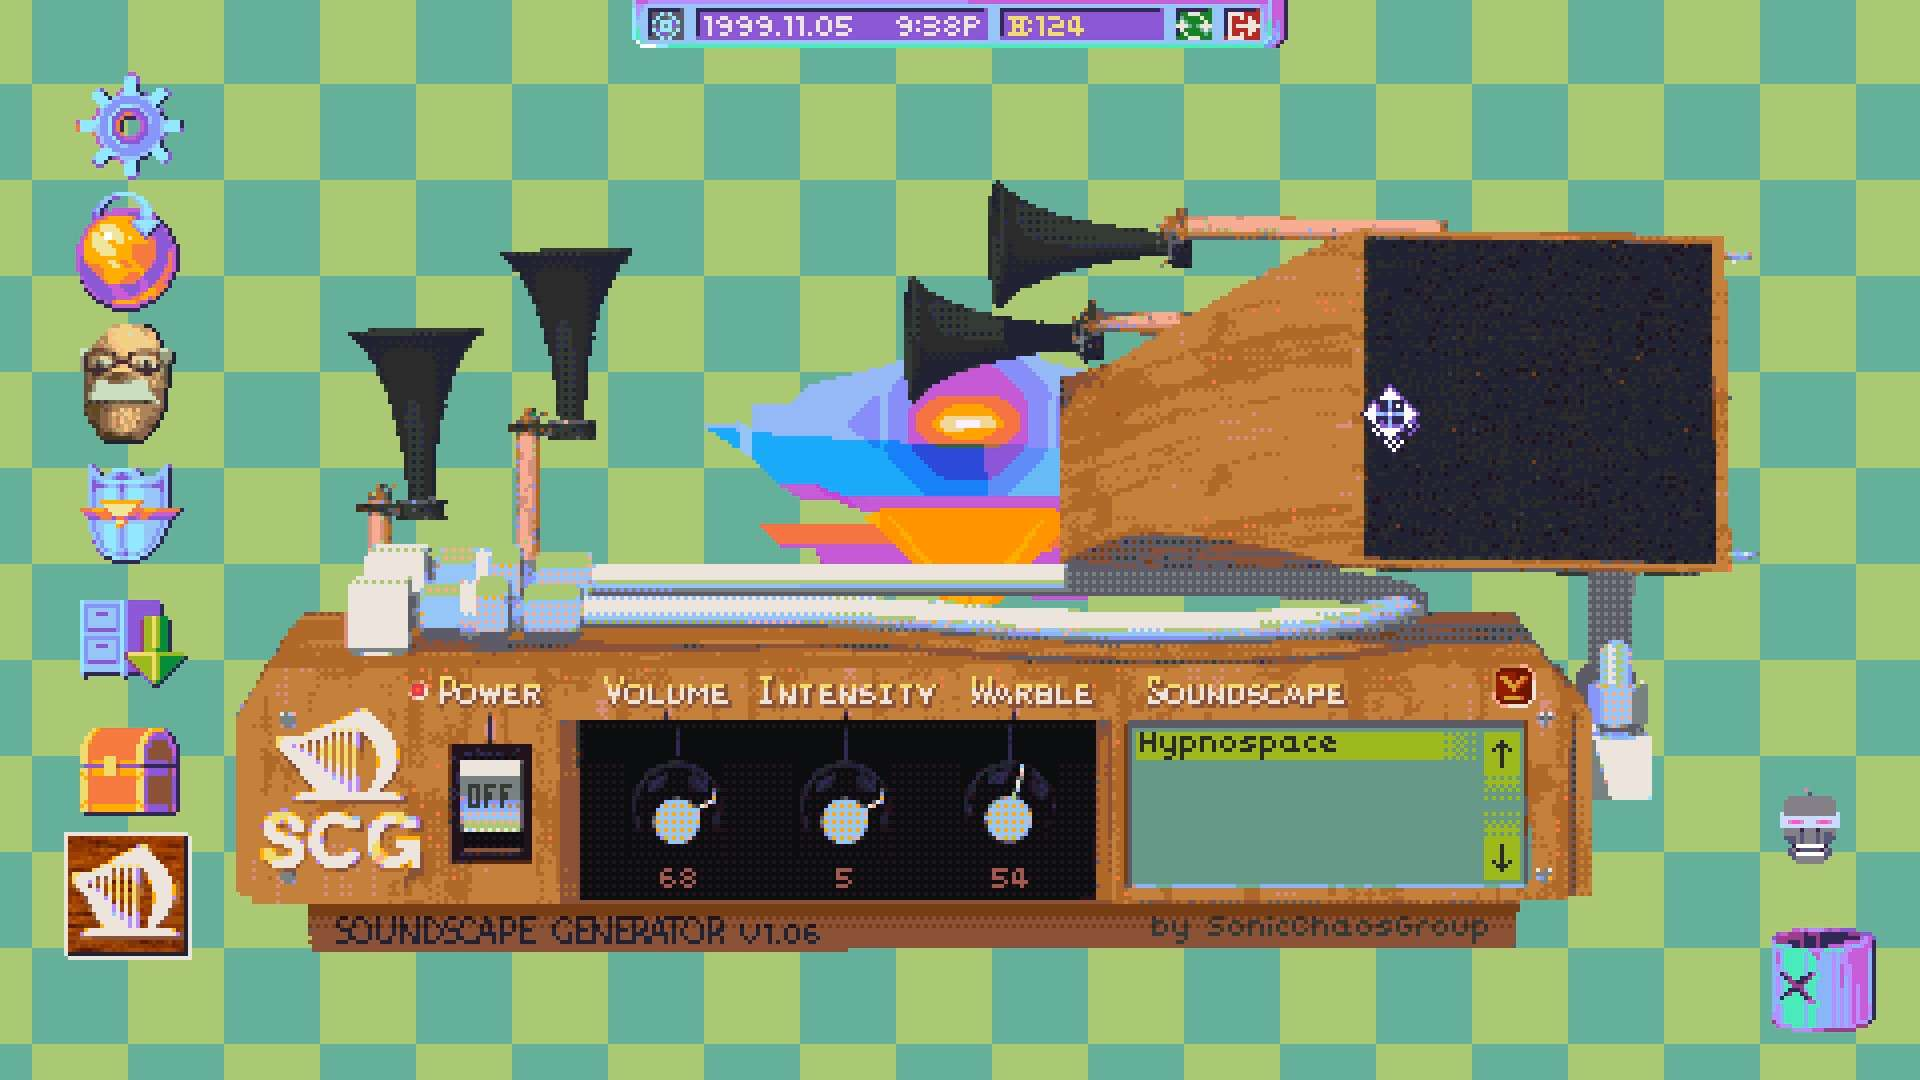 Hypnospace Outlaw #6